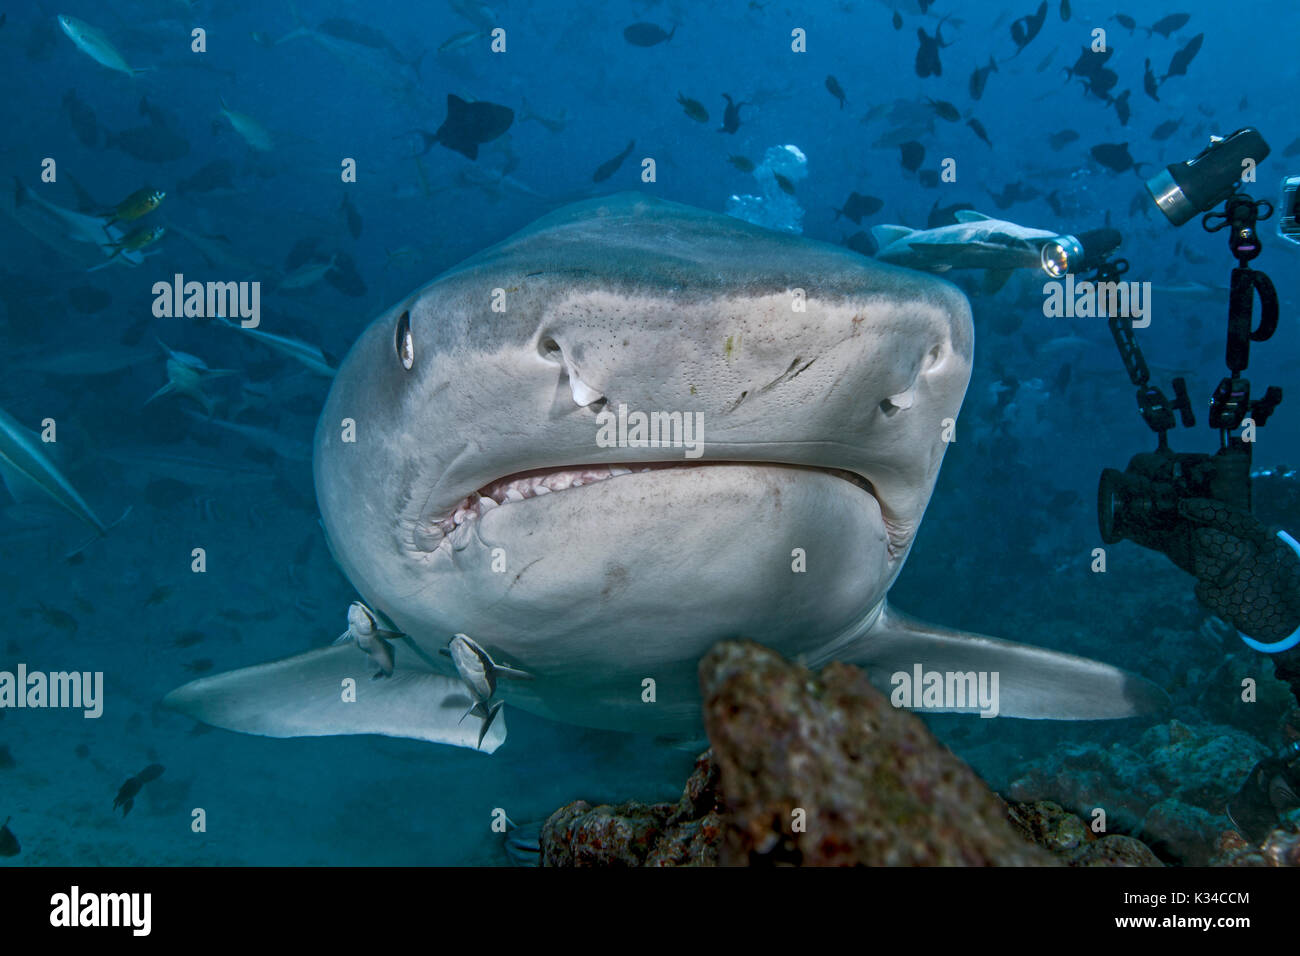 Videographer takes close up images of a large tiger shark as it approaches within arm's length. - Stock Image